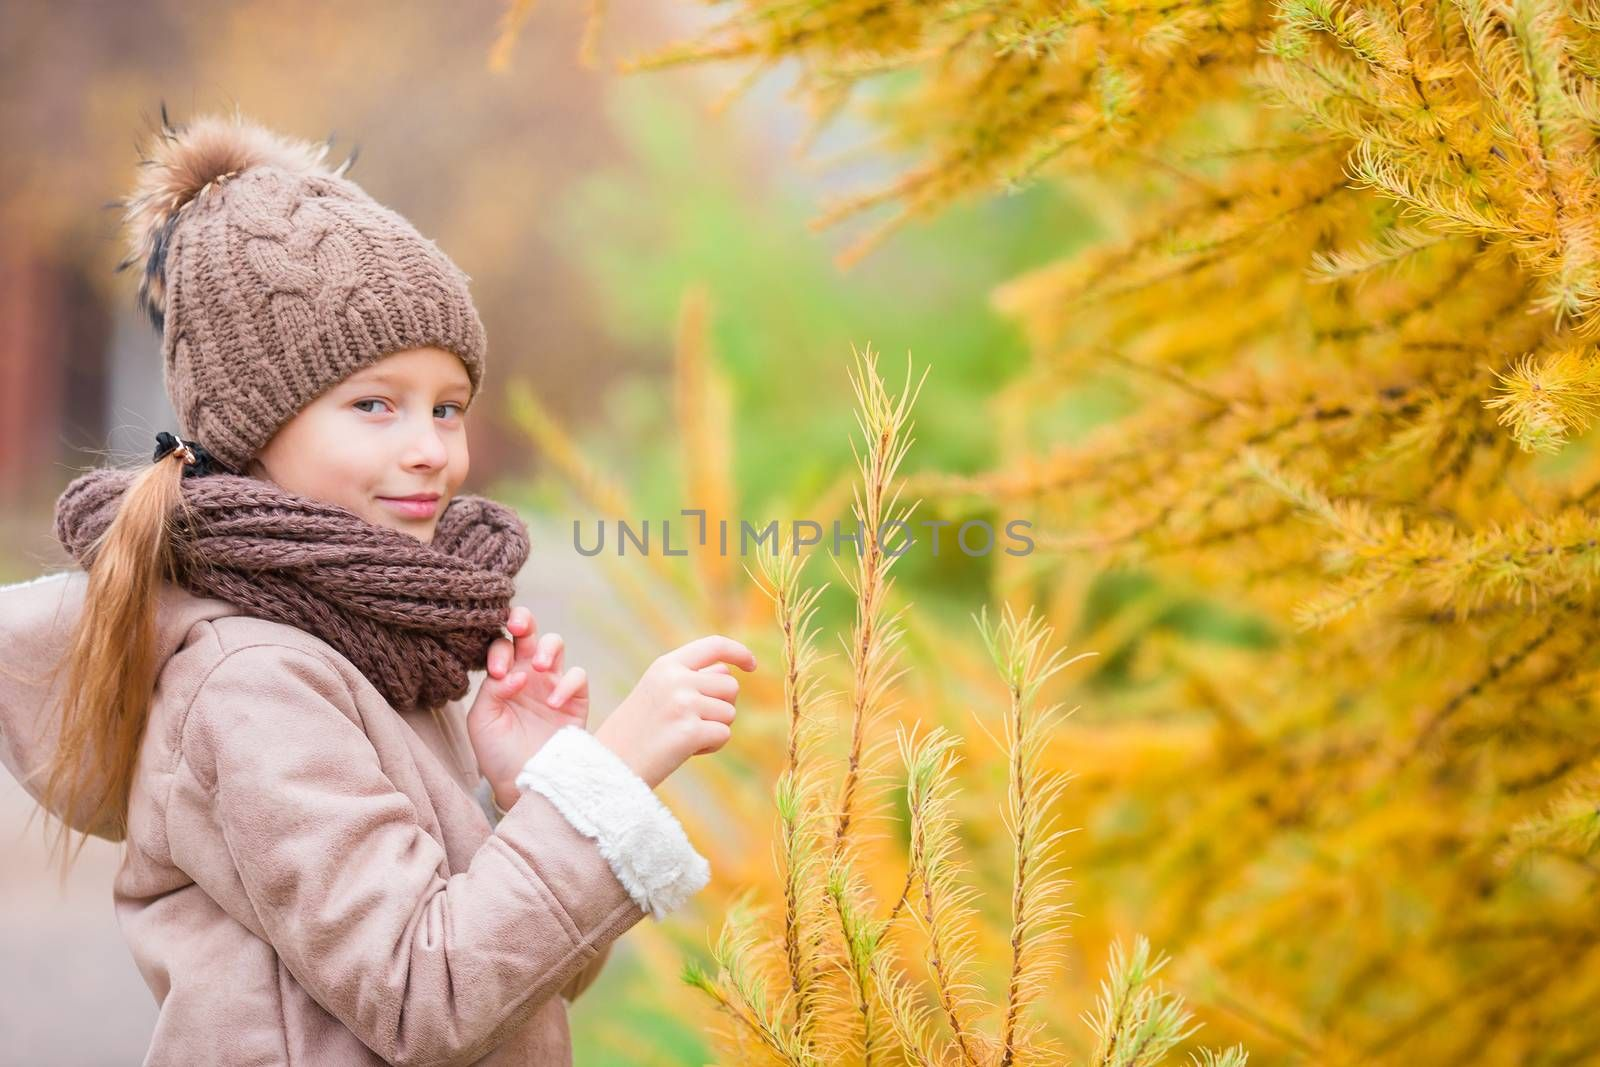 Adorable little girl at beautiful autumn day outdoors